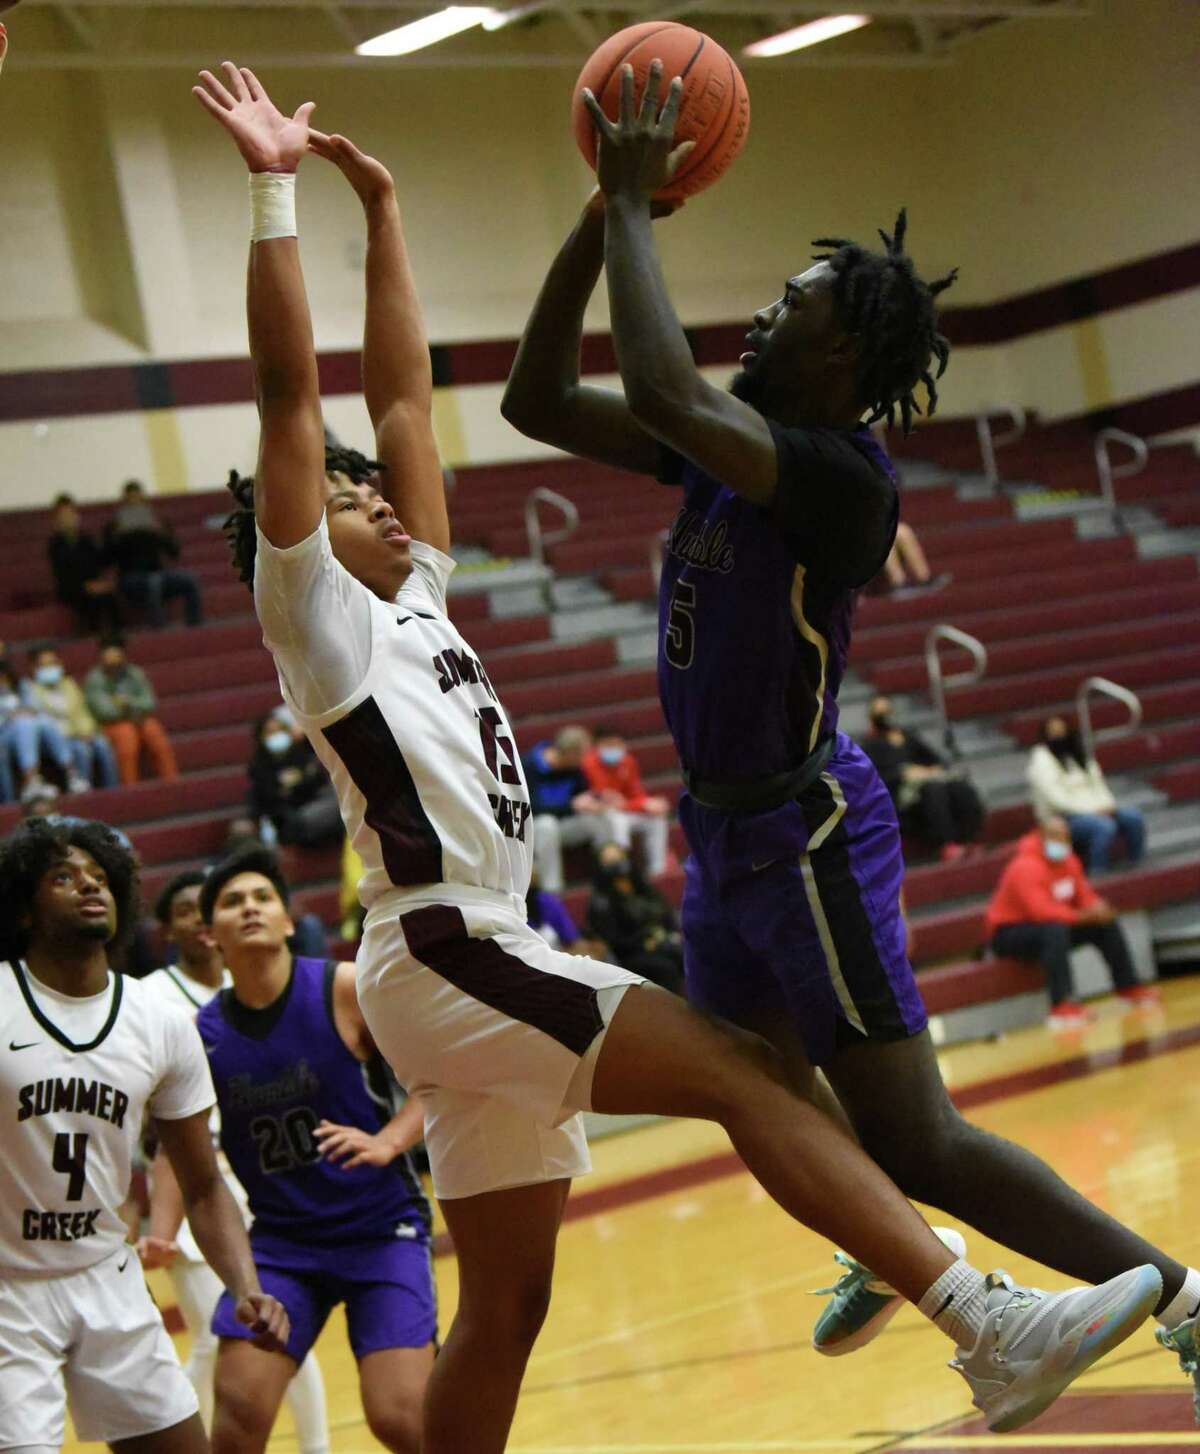 Humble guard Robert Williams goes up for a contested shot against Summer Creek's Reyce Allen.